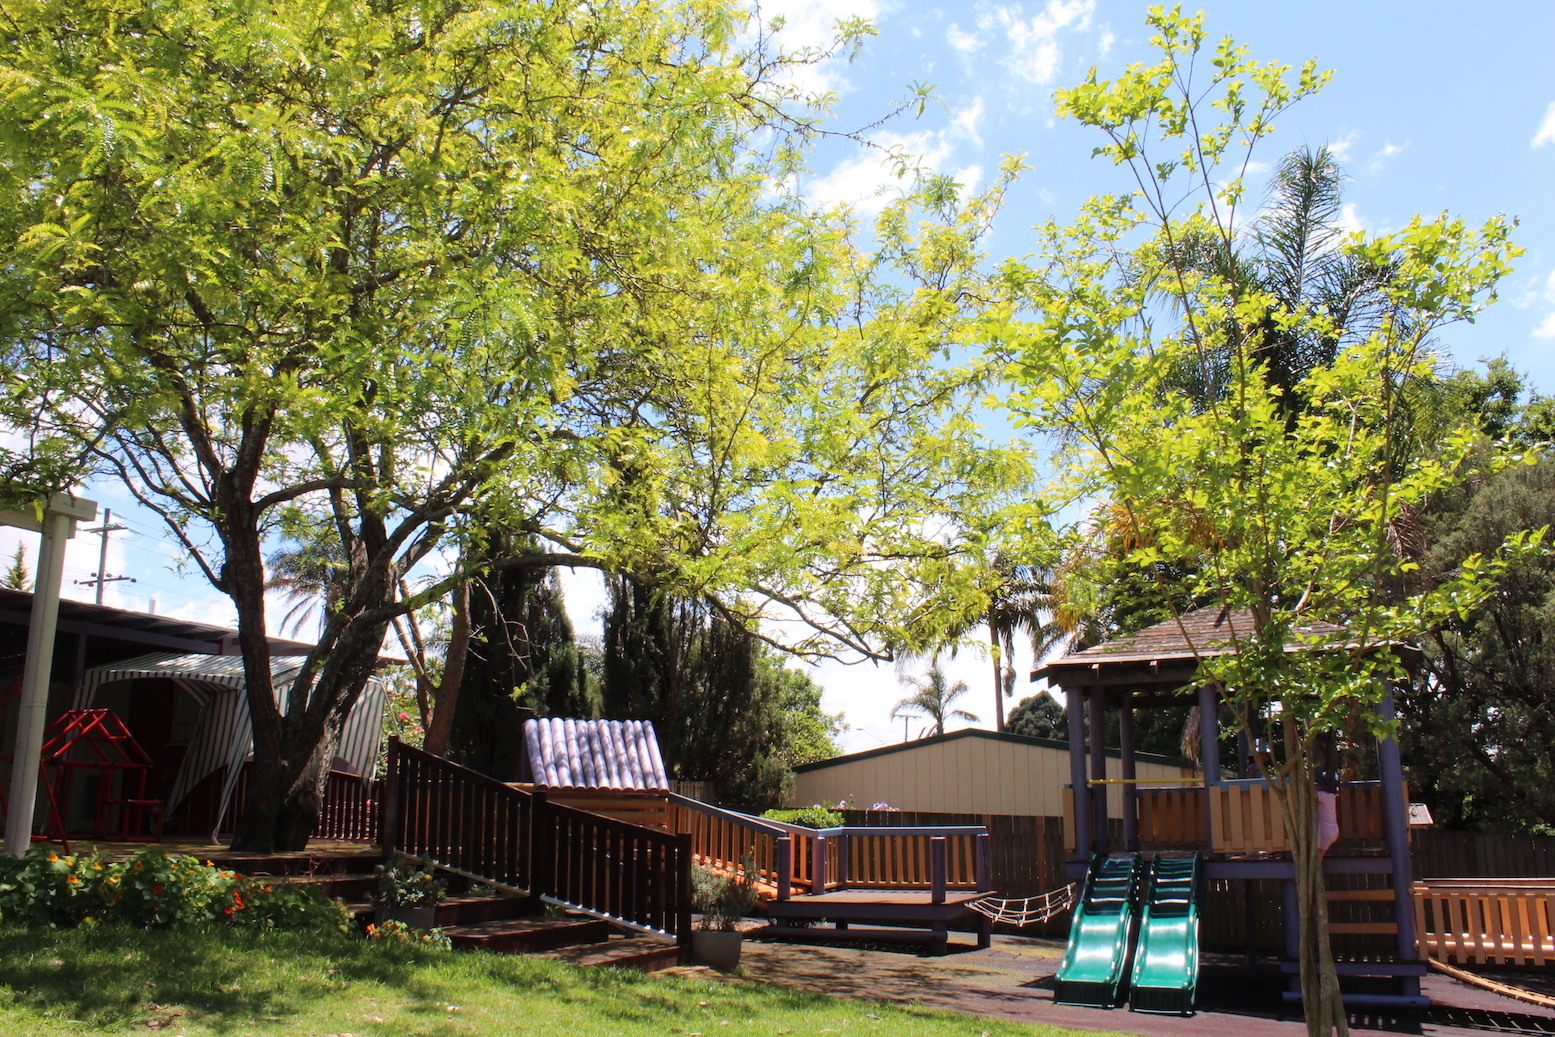 General Facilities - Our general facility areas include baby change areas and bathrooms (including disability access), as well as a variety of facilities for parents, visiting guest speakers and professionals, including a tea and coffee station, library and book exchange. The entire Kindergarten is air-conditioned for the comfort of children all year round with large windows allowing for fresh air and views to the beautiful outdoor areas.